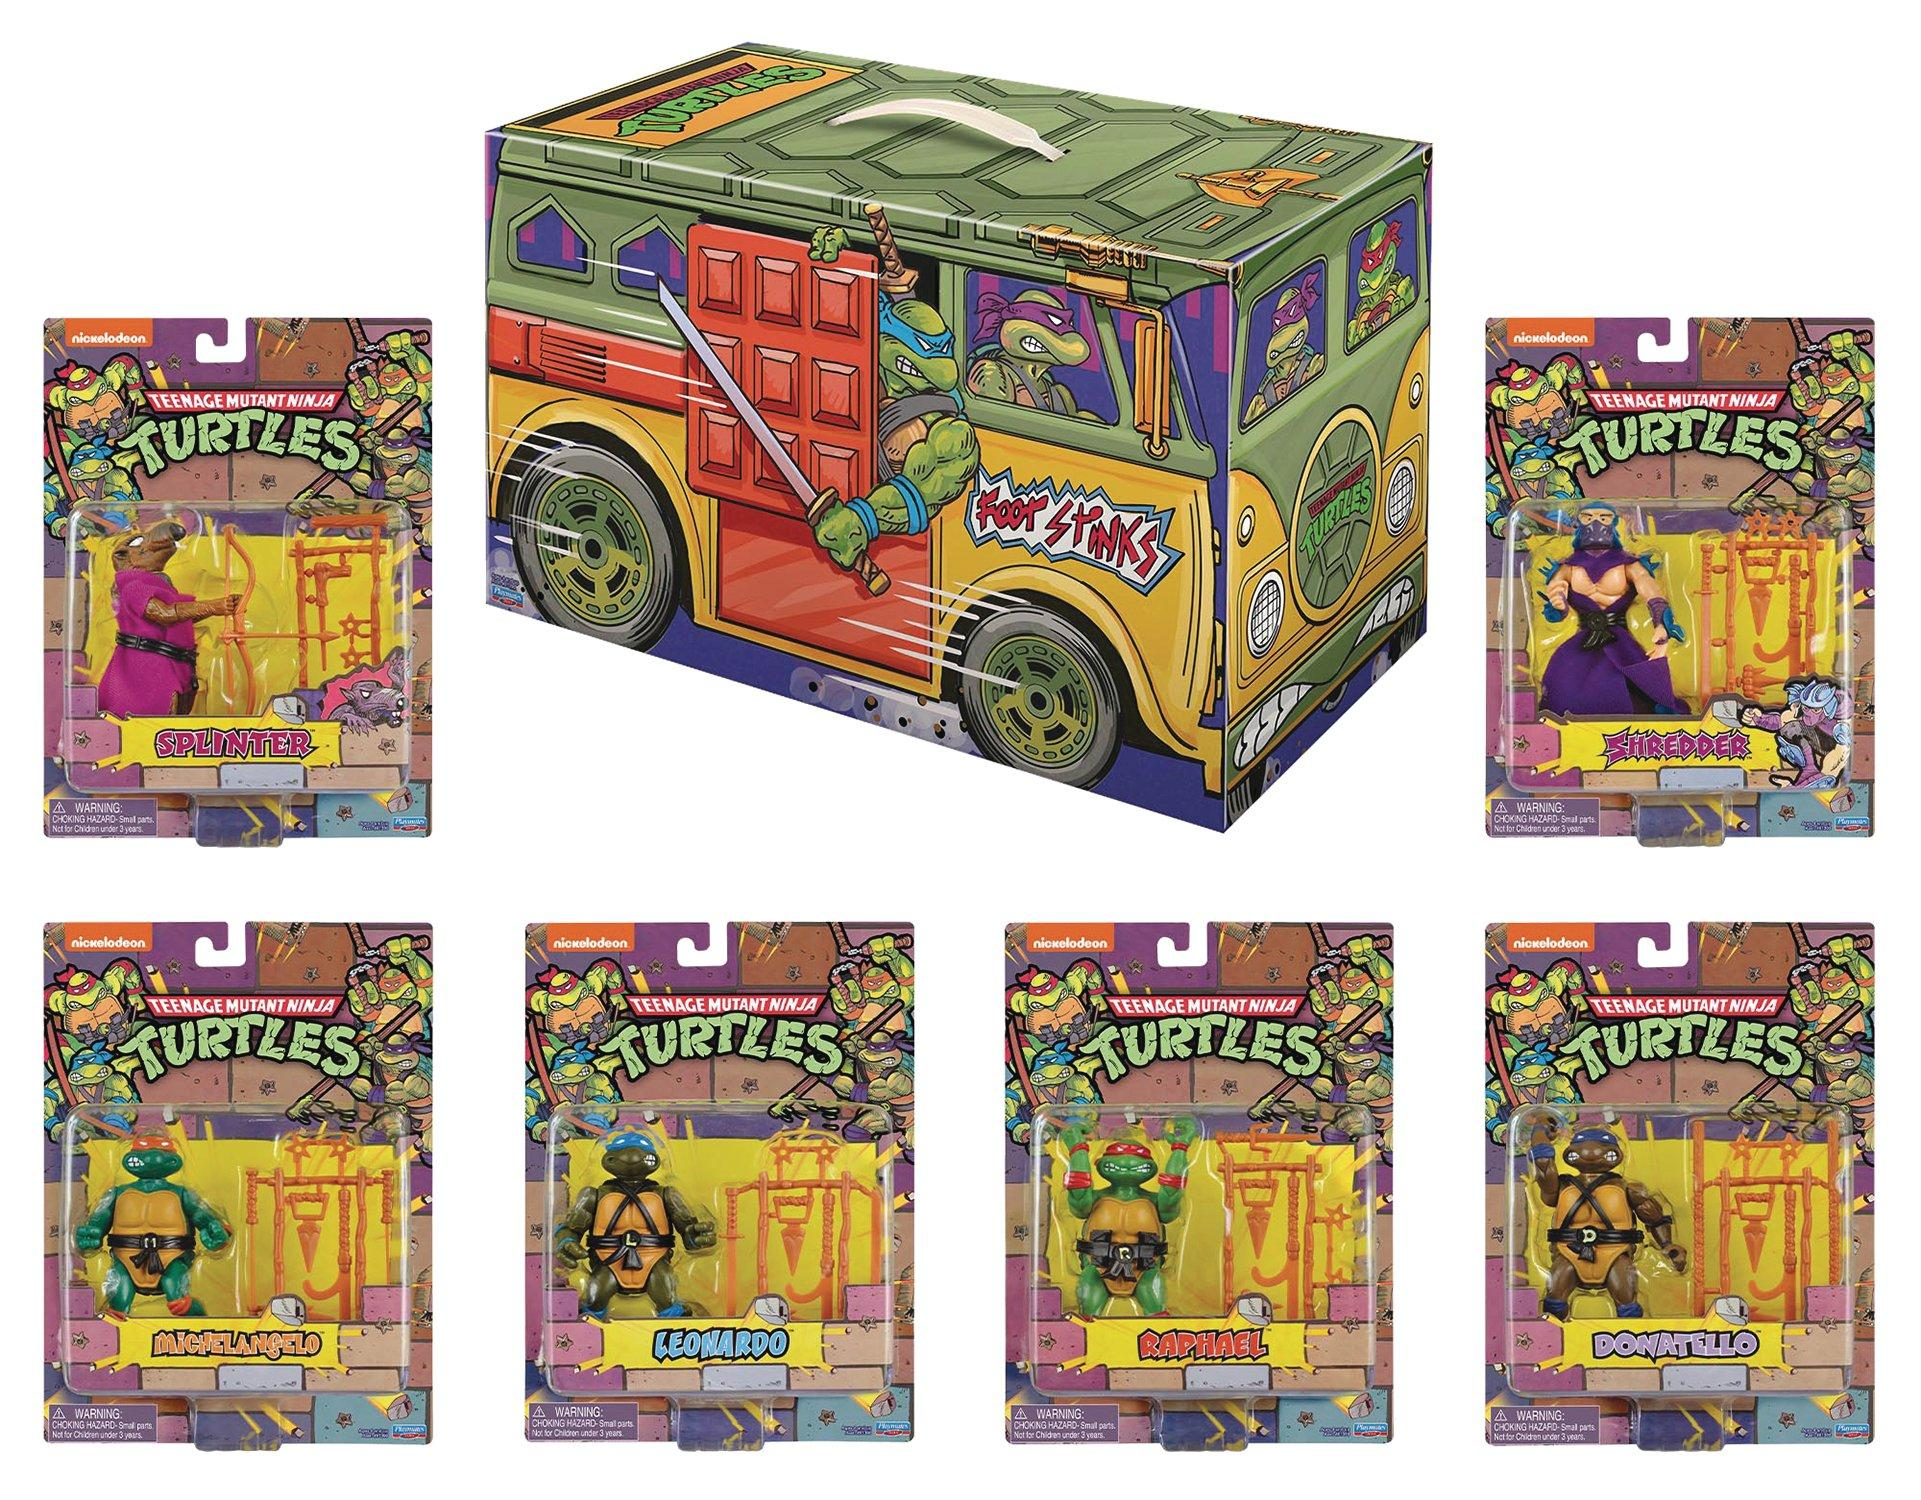 Teenage Mutant Ninja Turtles Rotocast Action Figure Set Summer Convention 2020 Gamestop